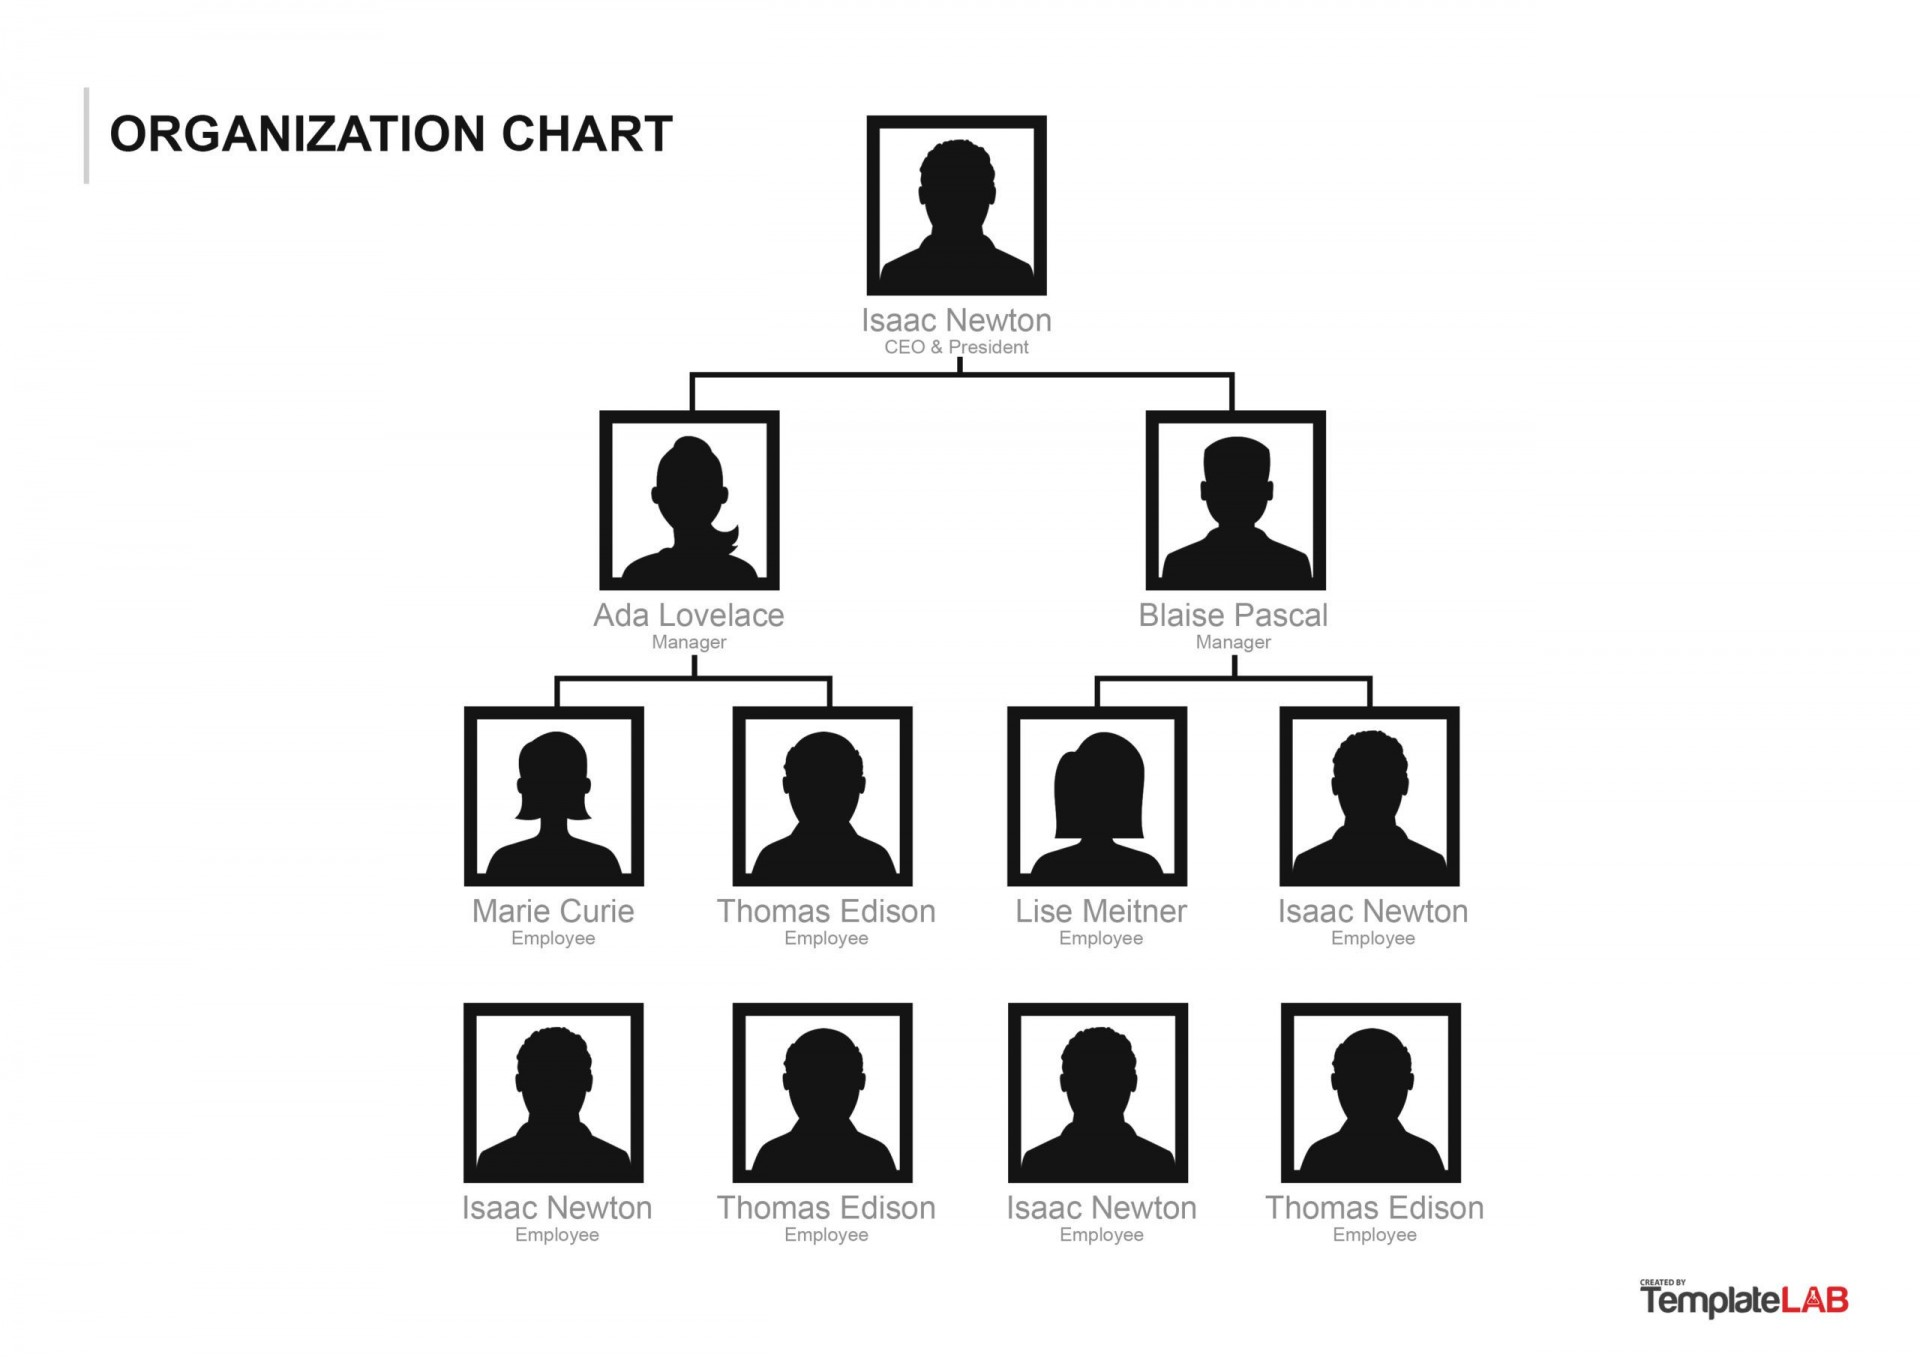 009 Fascinating Free Organizational Chart Template Word 2007 High Def 1920